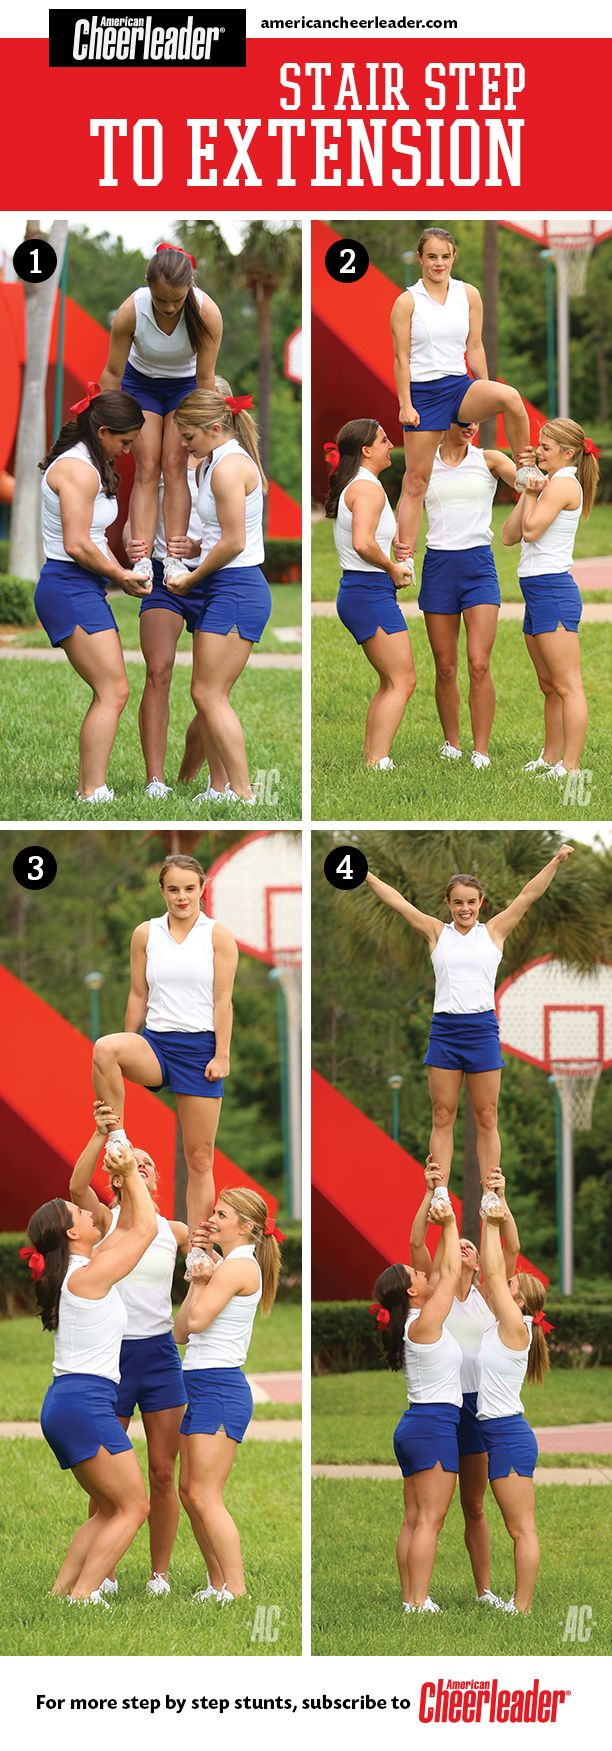 Do Basic Cheerleading Cheer Moves And Cheer T